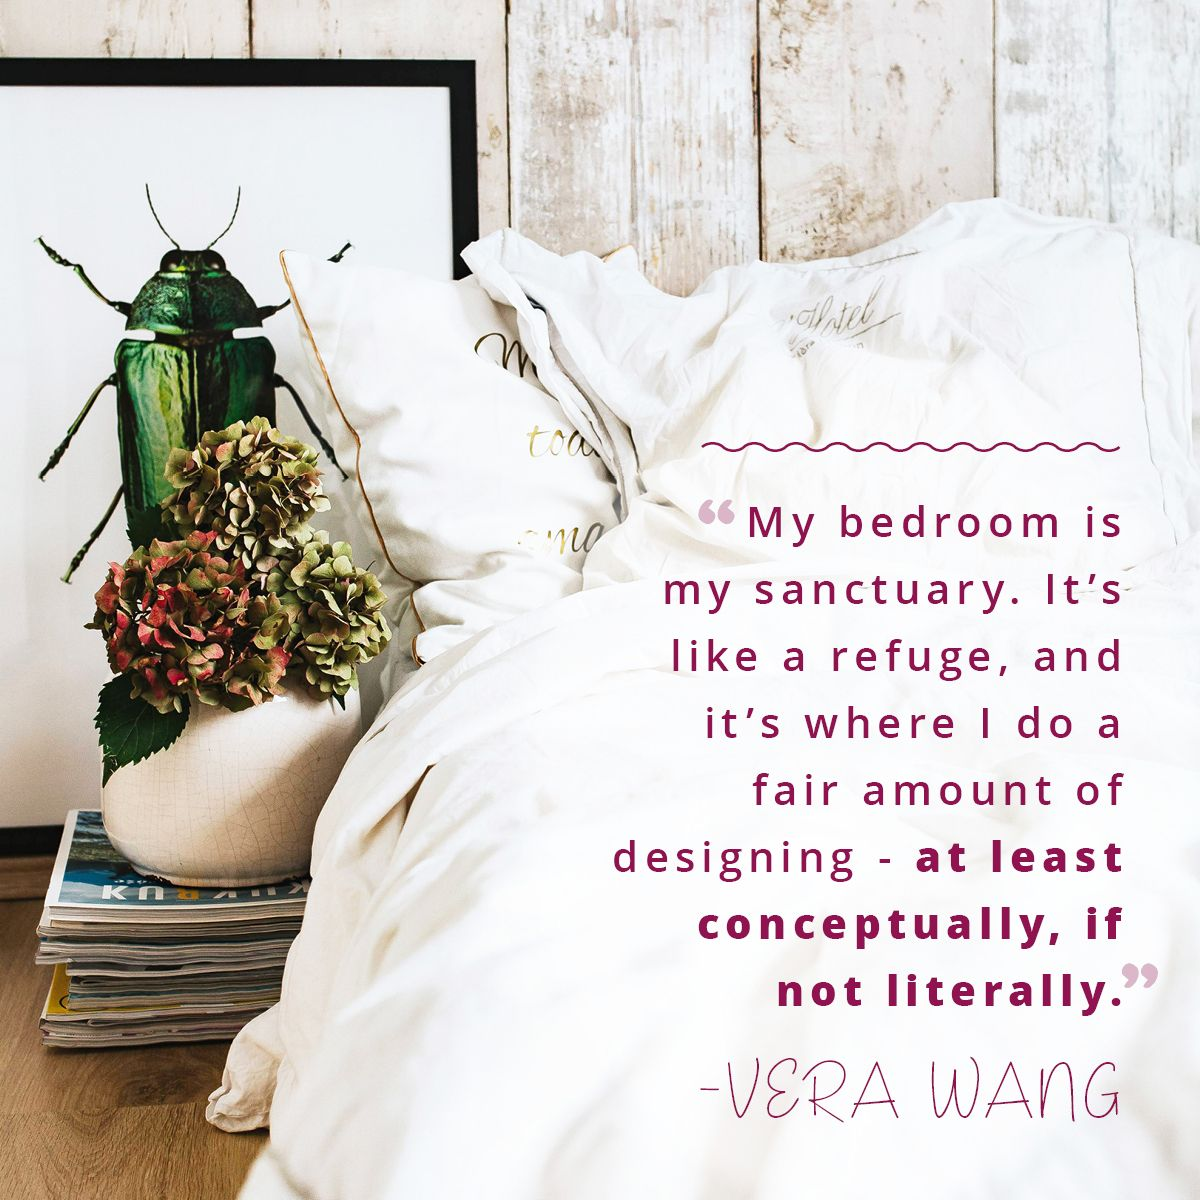 Many People Consider Their Bedroom A Sanctuary A Place To Escape From The World Comfort Is A Ma Interior Design Quotes Design Quotes Interior Design Courses Customer inspiration my bedroom